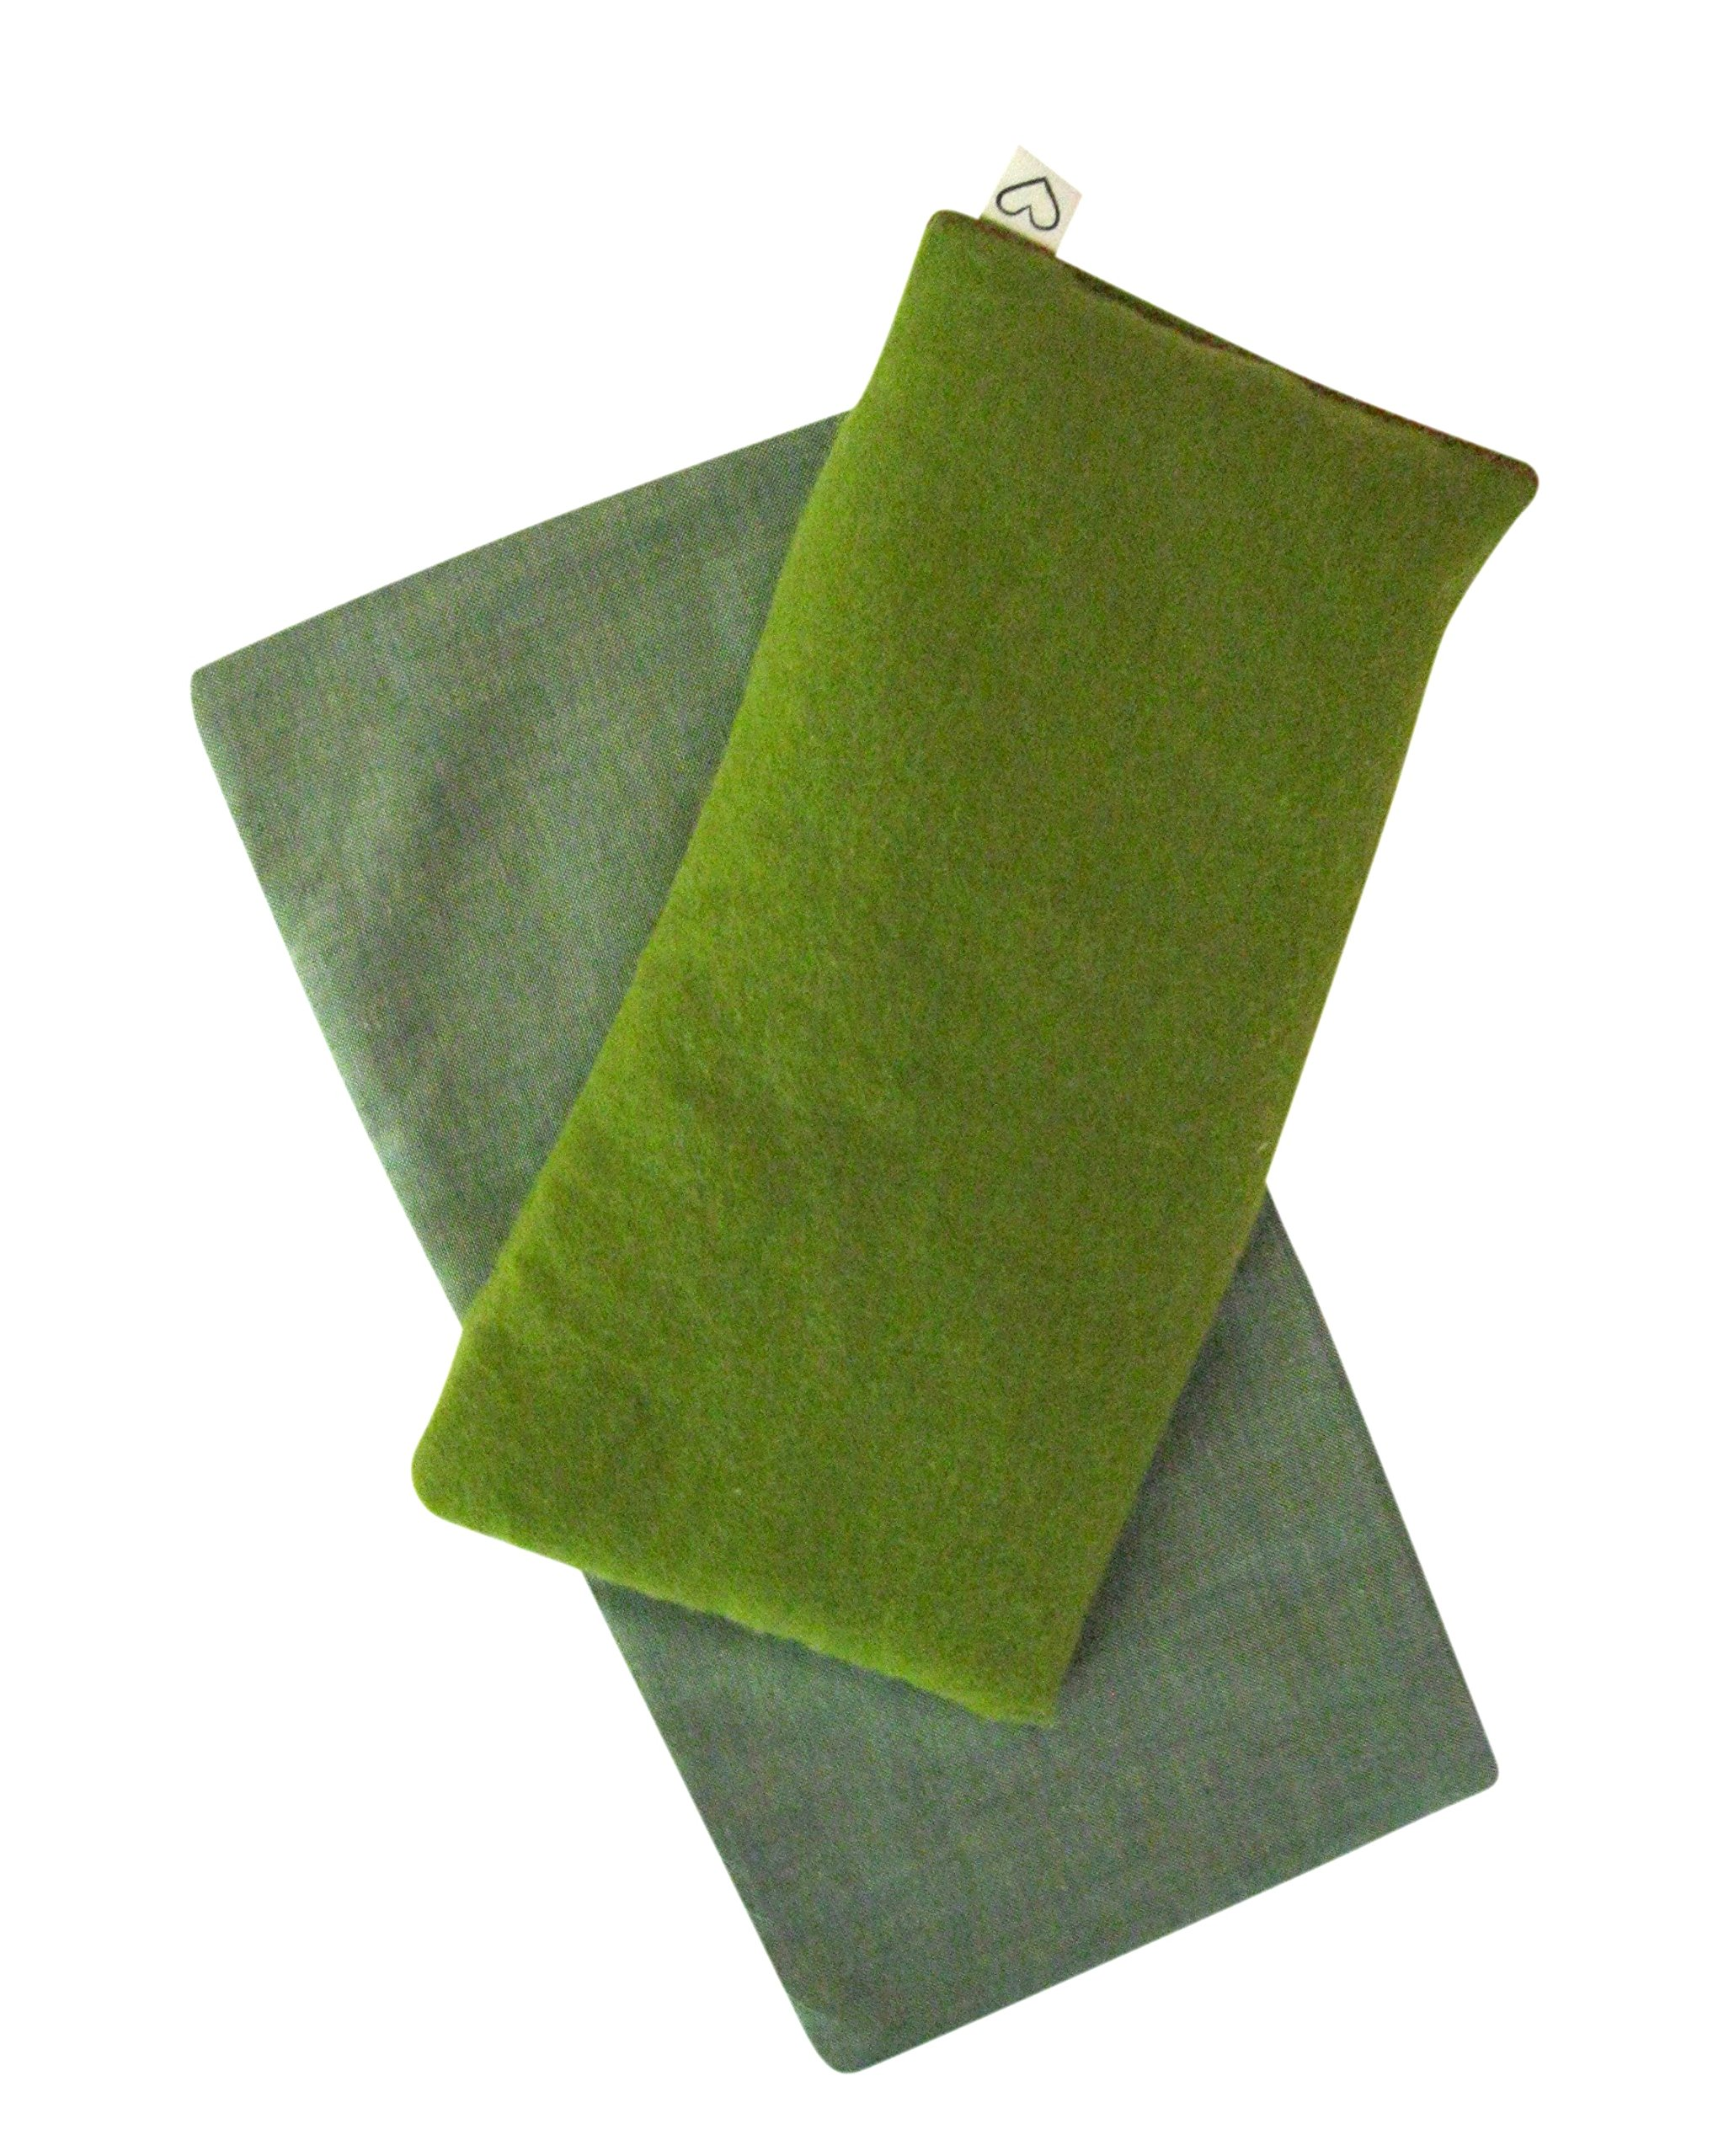 Unscented Eye Pillow with Cover - Gift Set - 4 x 8.5 - Organic Flax Seed - Soft Cotton Flannel - Washable - Soothing Relaxing - kiwi green by Peacegoods